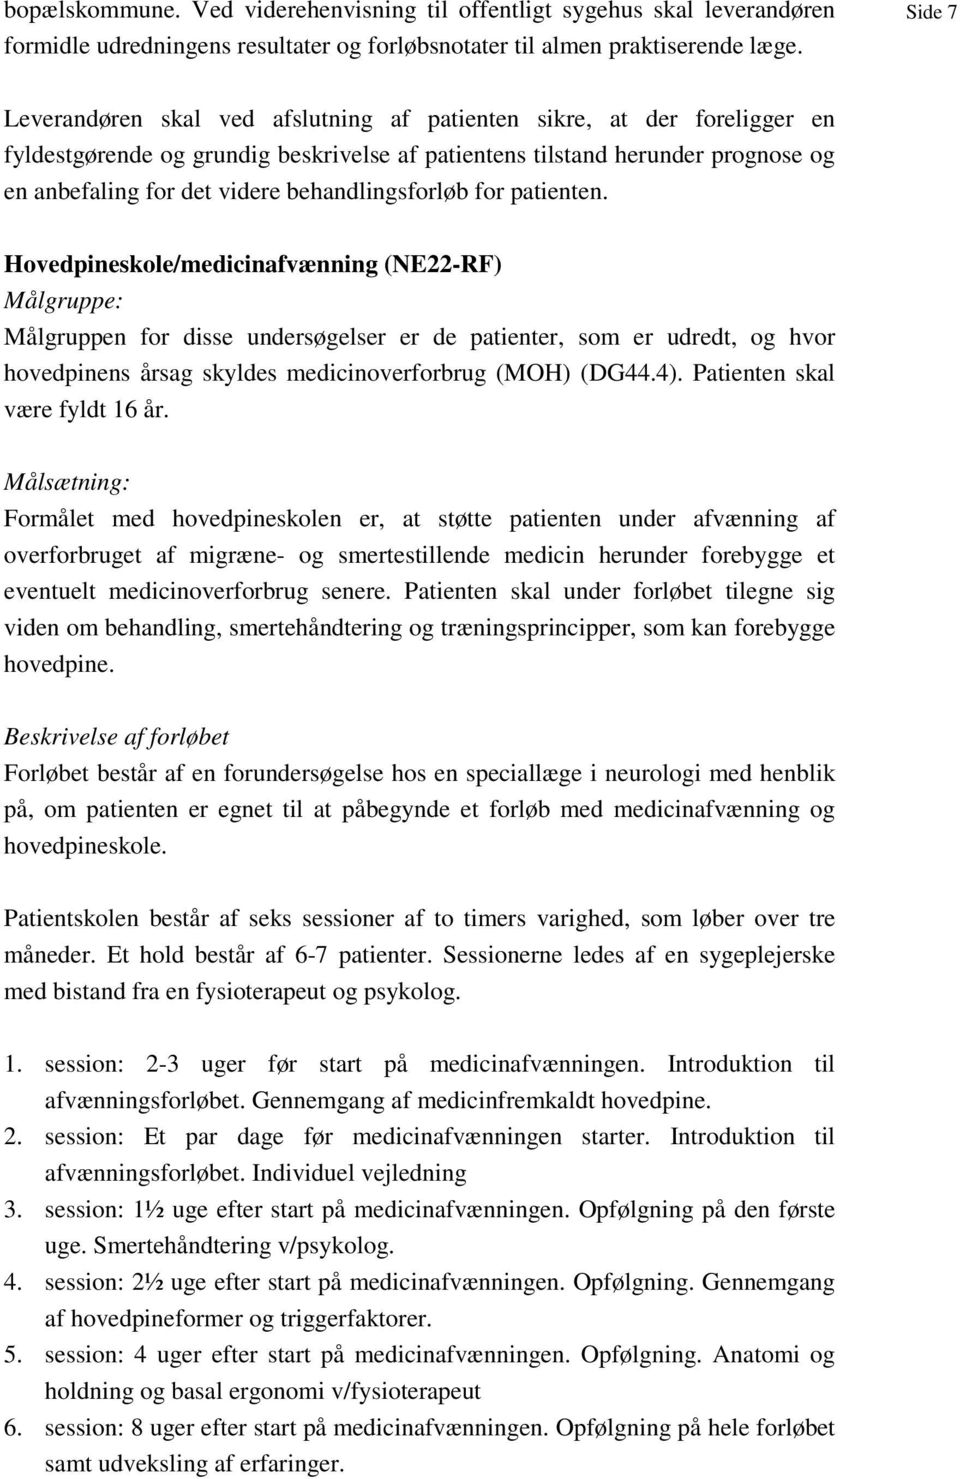 behandlingsforløb for patienten.